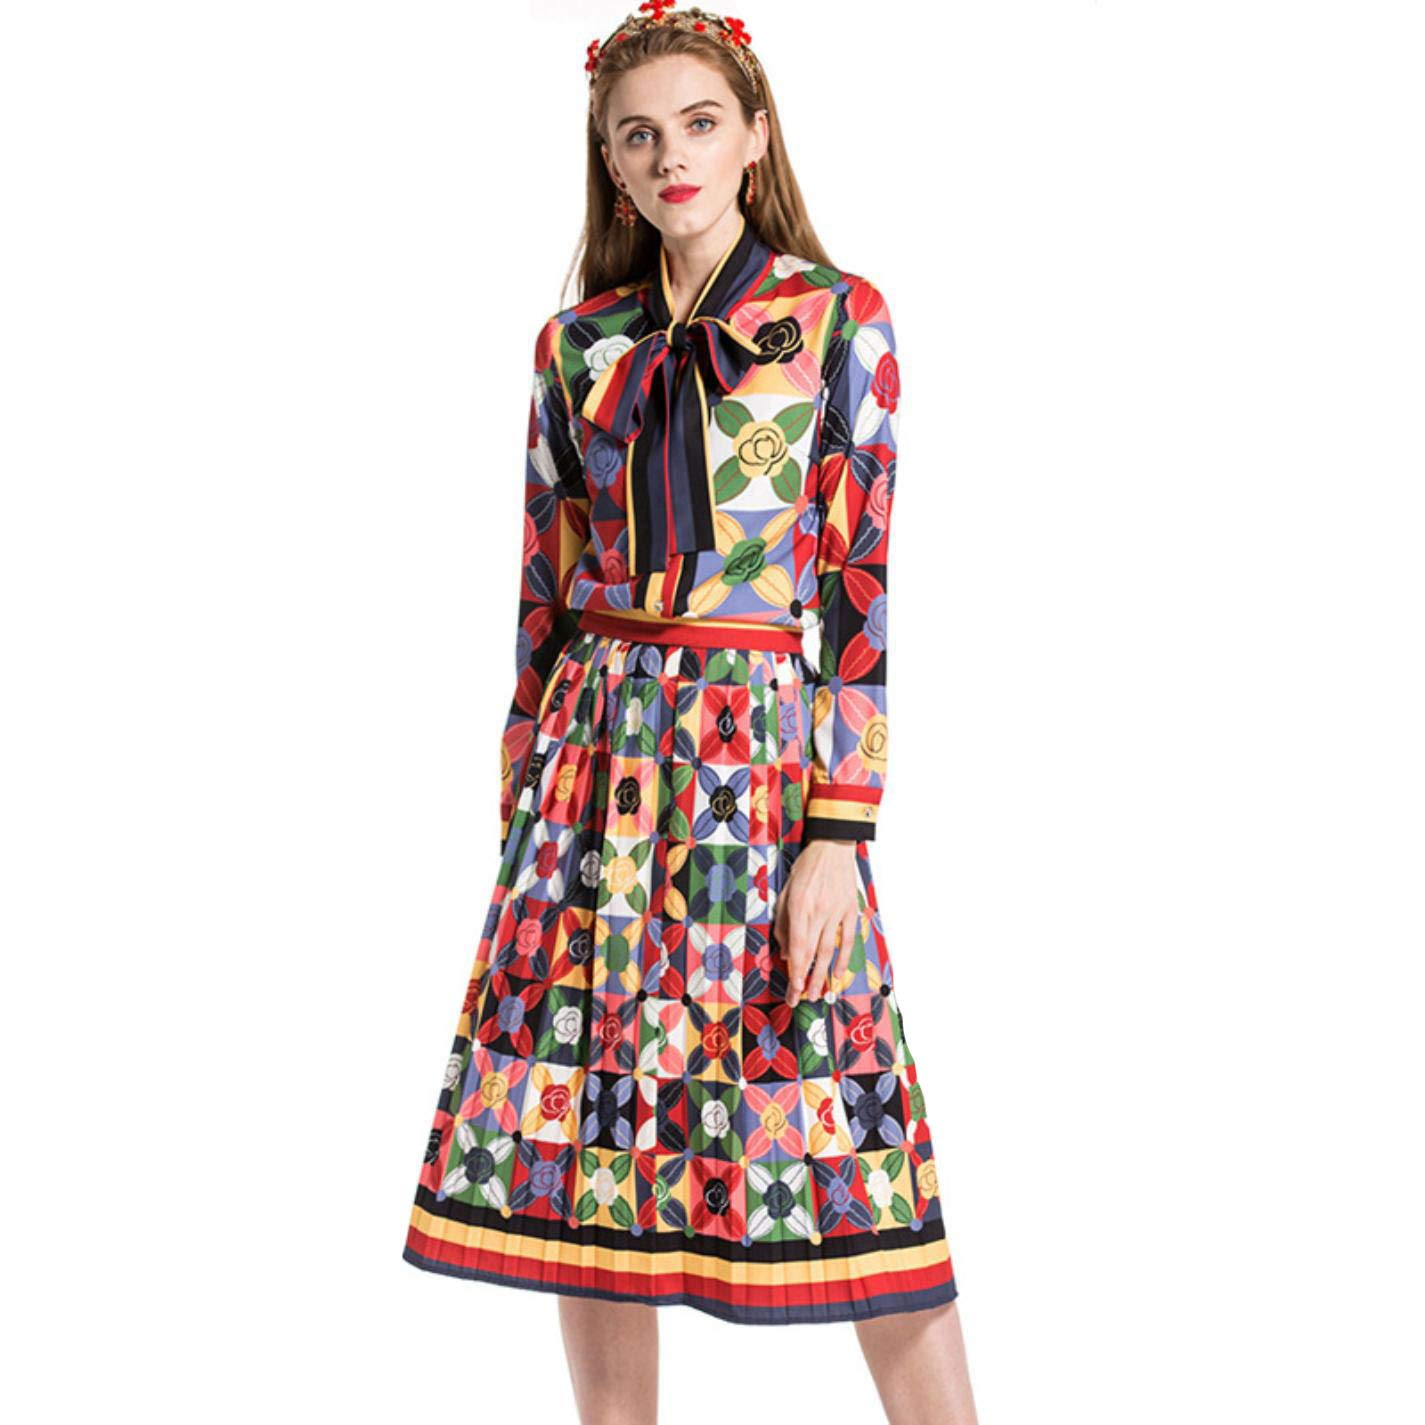 Women Long Sleeves Printed Bow Shirt with Pleated Skirts Fashion Dress Sets